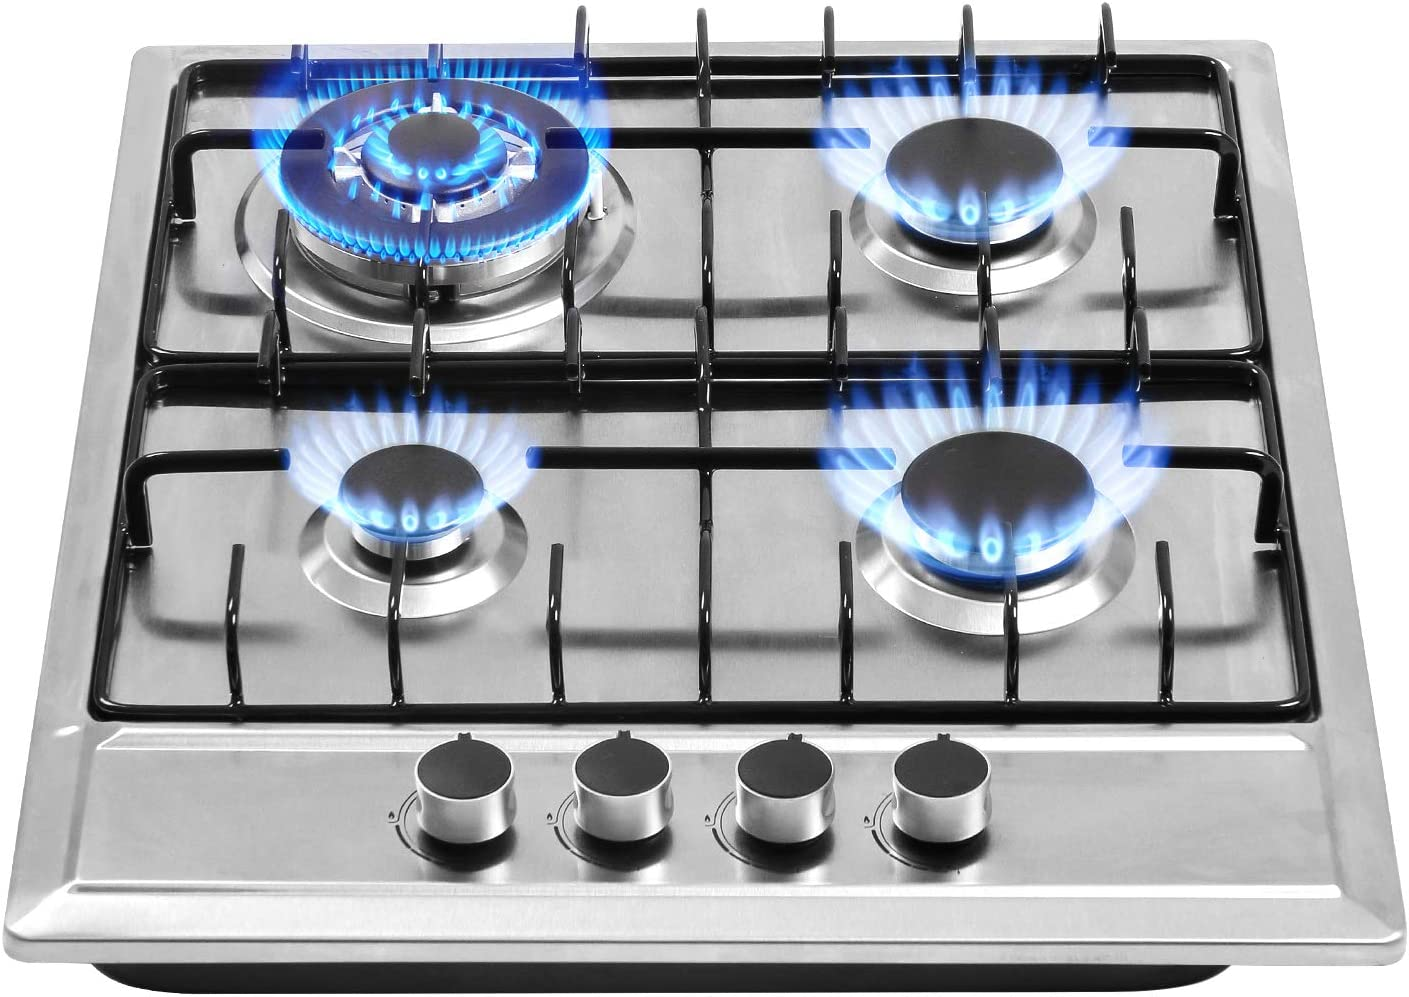 Built in Gas Cooktop 4 Burners Stainless Steel Stove